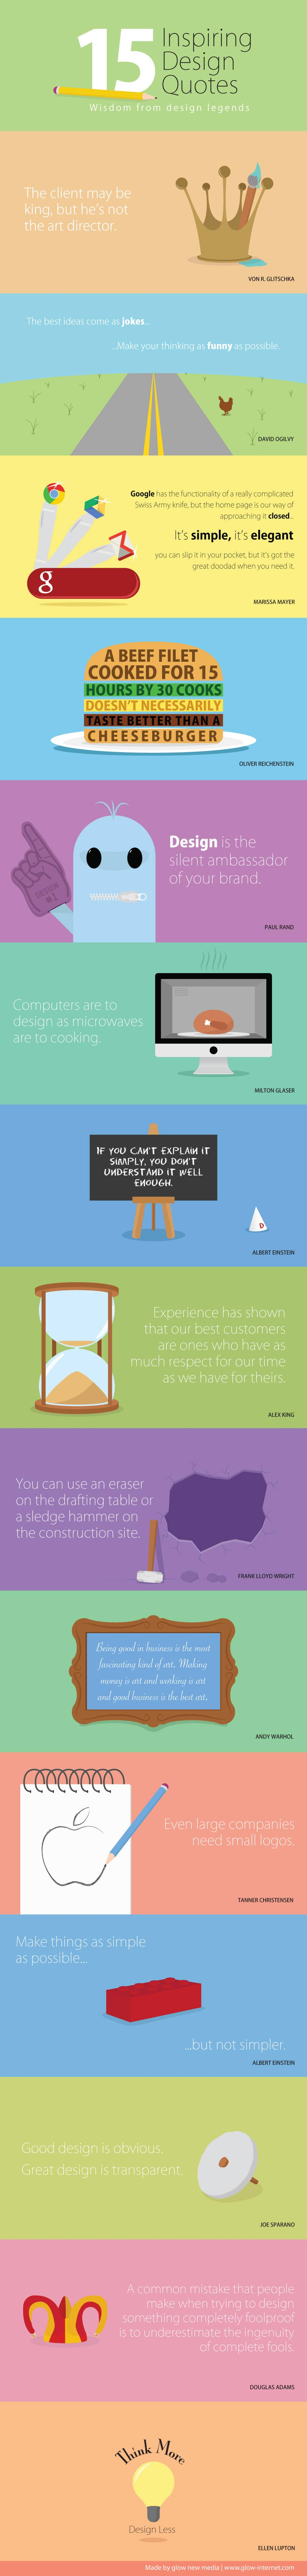 15 Inspiring Design Quotes To Get You Through The Day [Infographic]